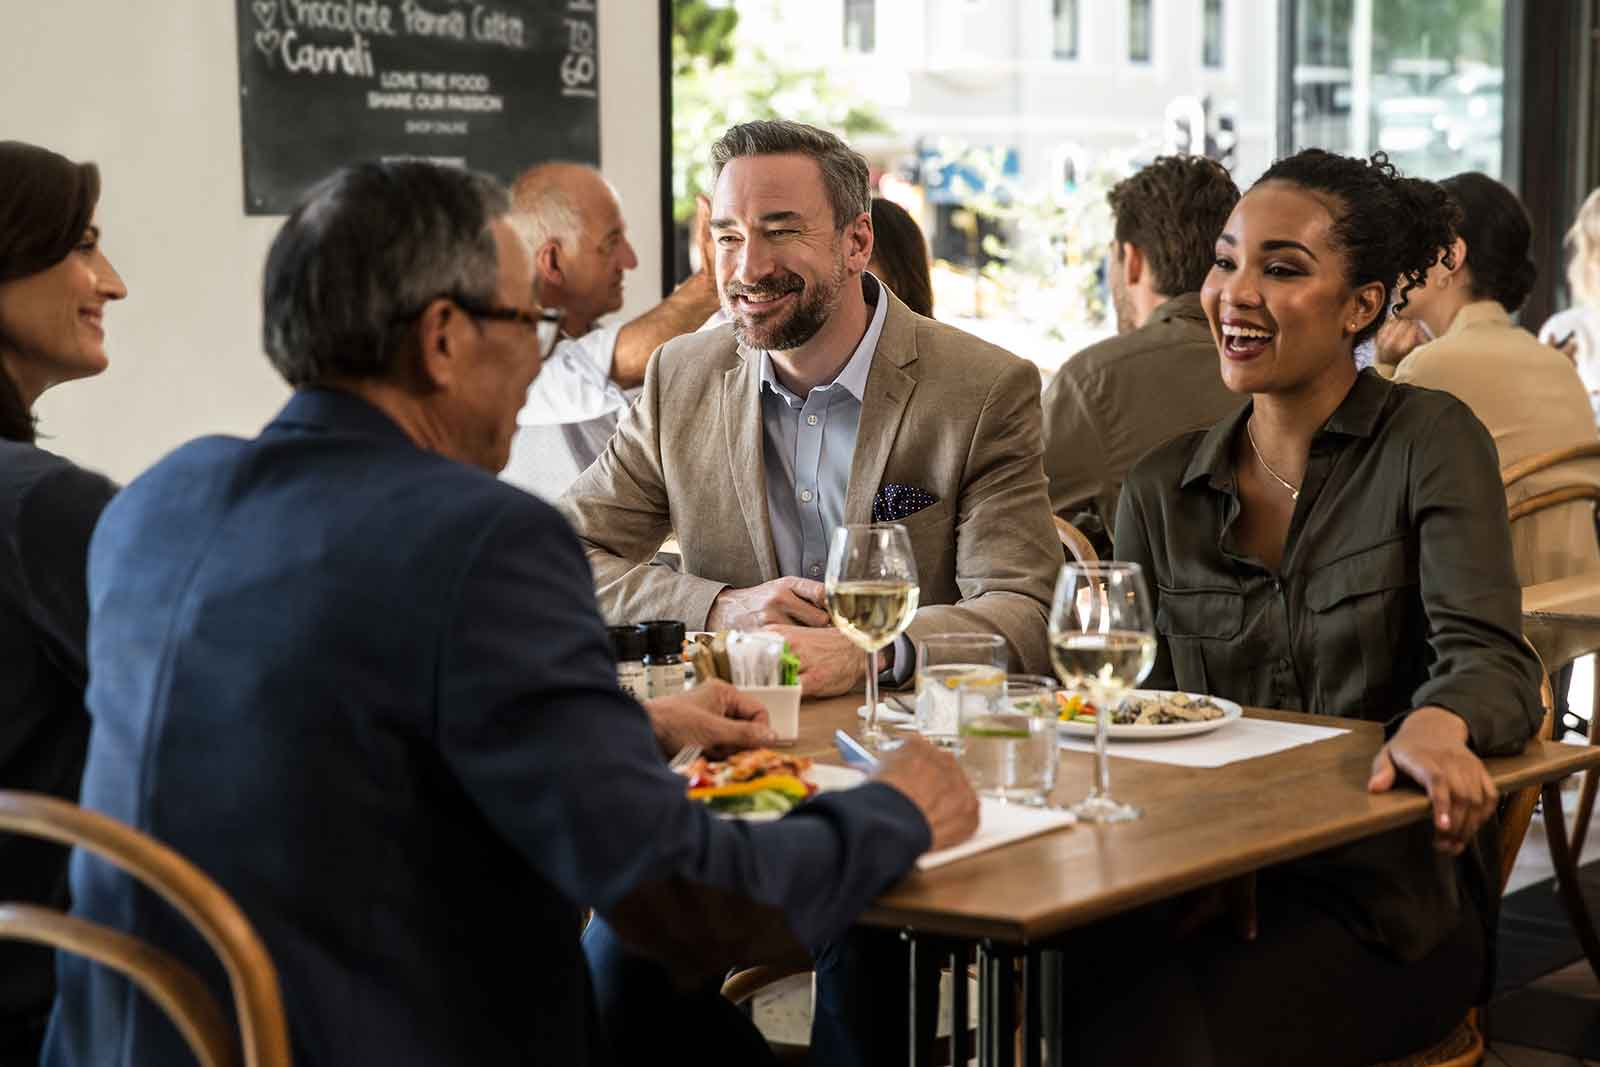 Hearing aid satisfaction is high in restaurants with EVOKE smart hearing aids